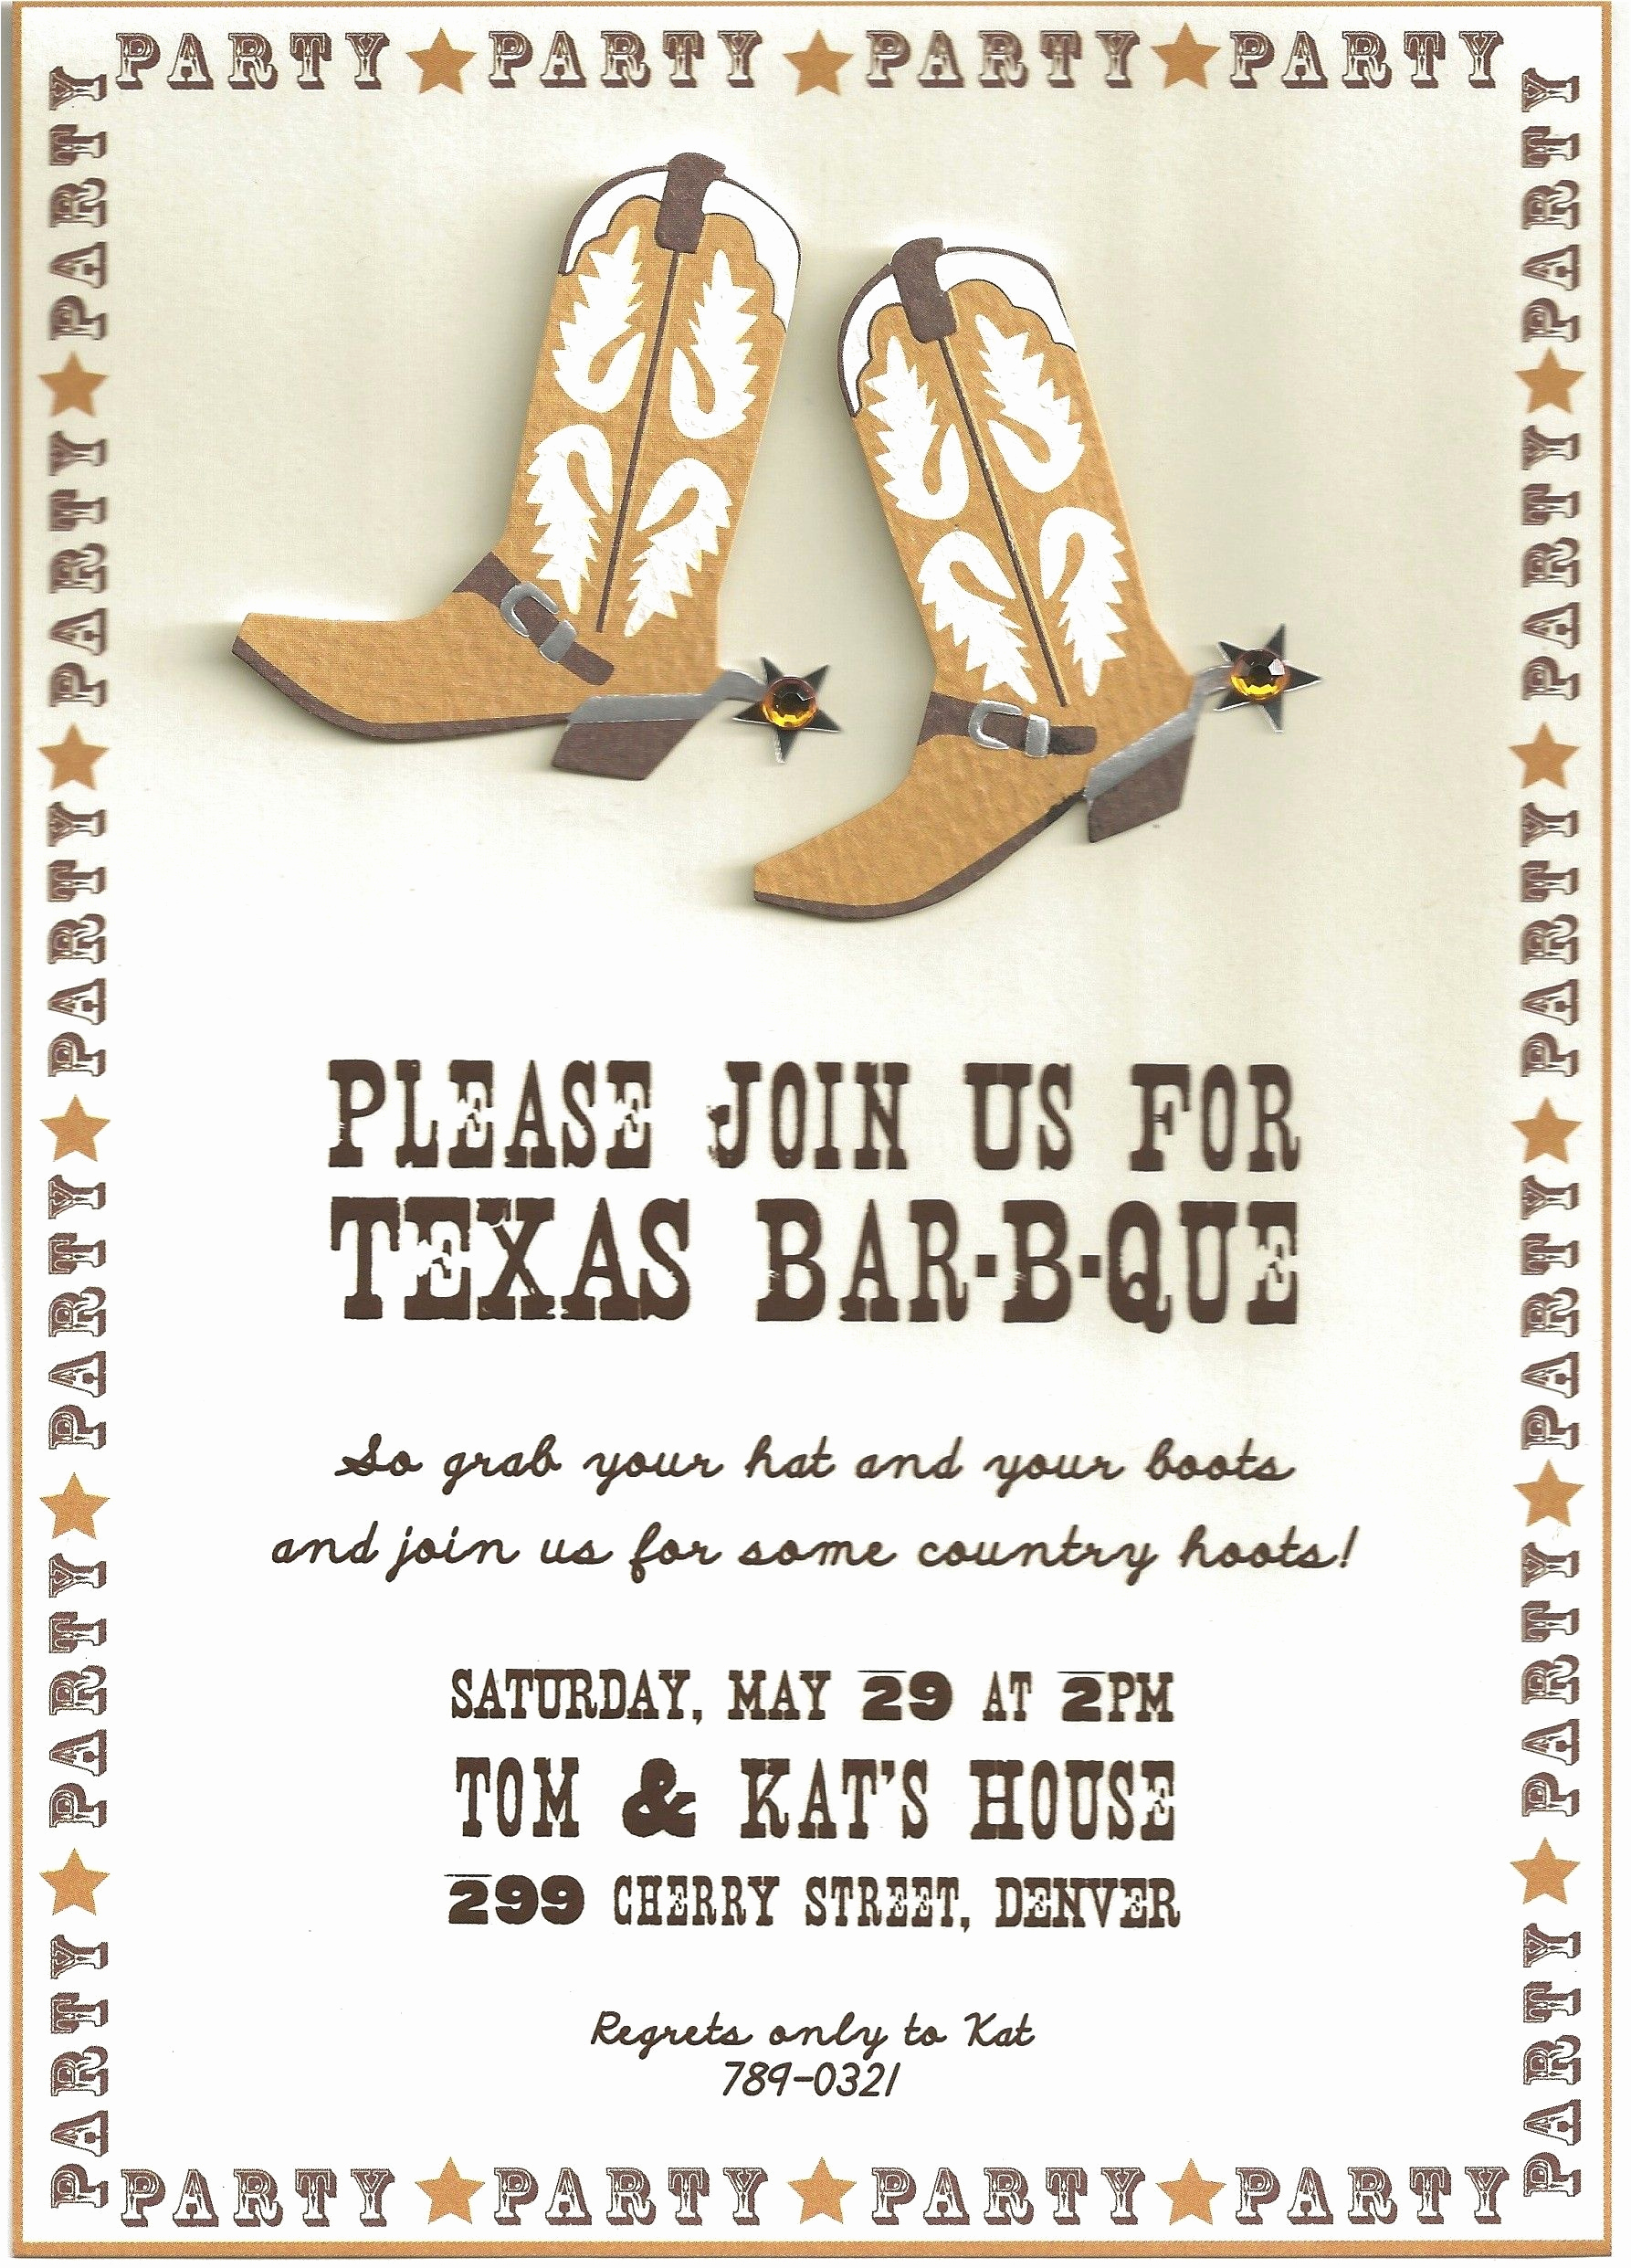 Western theme Party Invitation Template Inspirational Cowboy Party Invitation Wording Invitation Templates